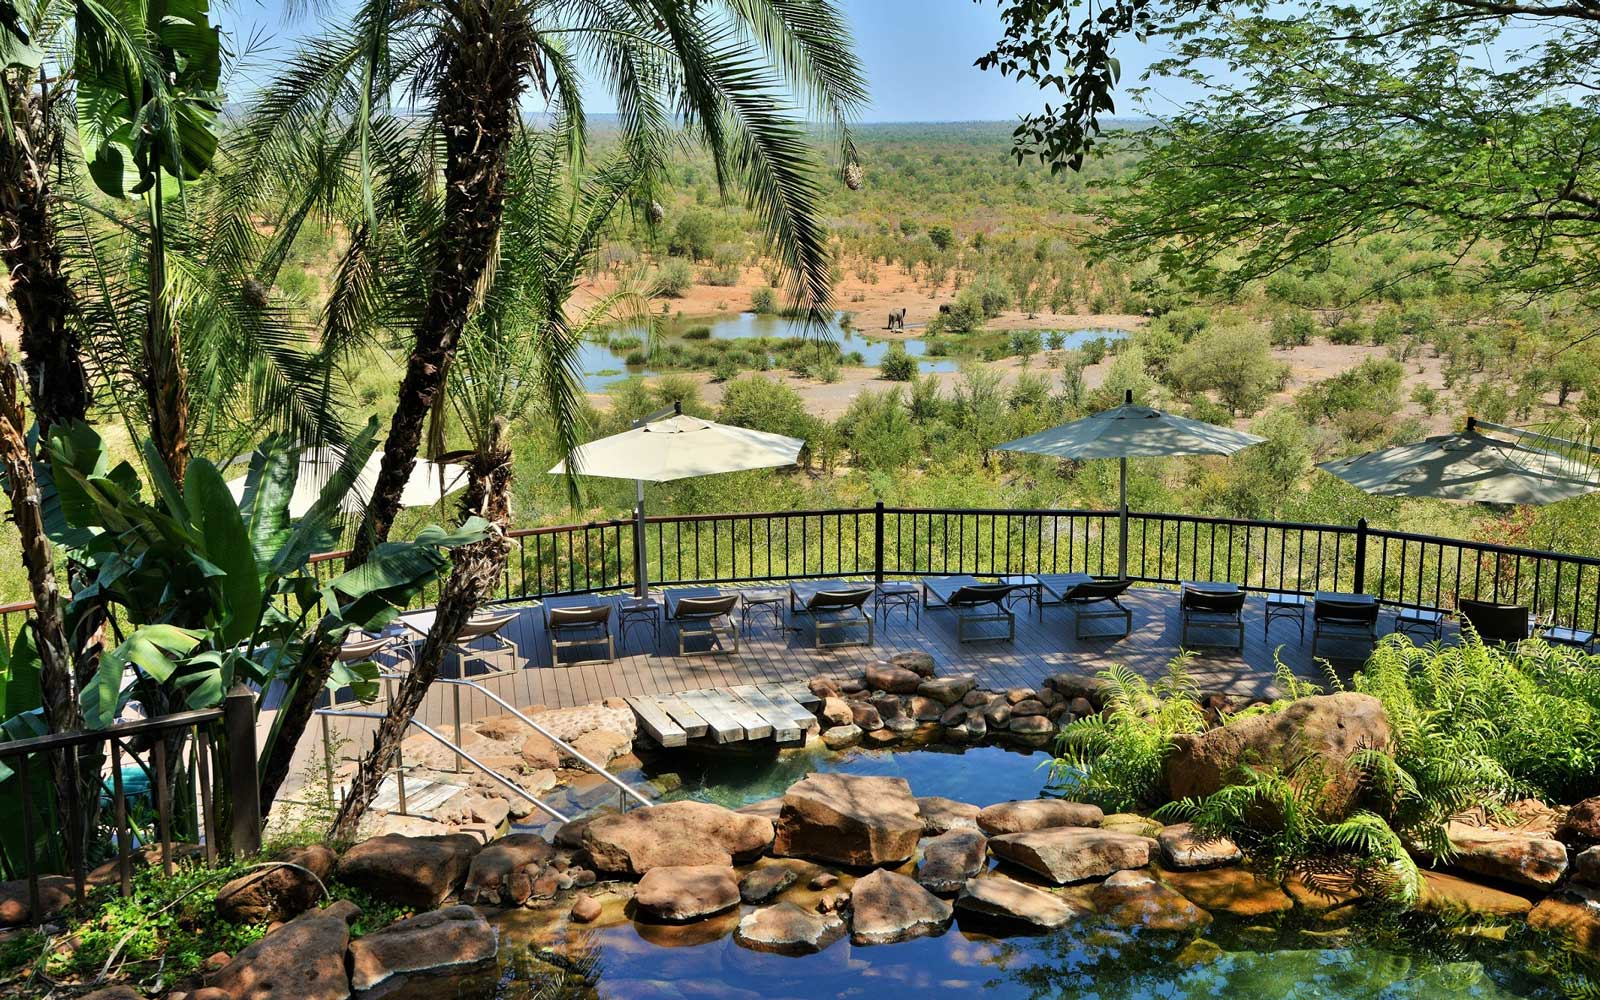 View from the Victoria Falls Safari Lodge